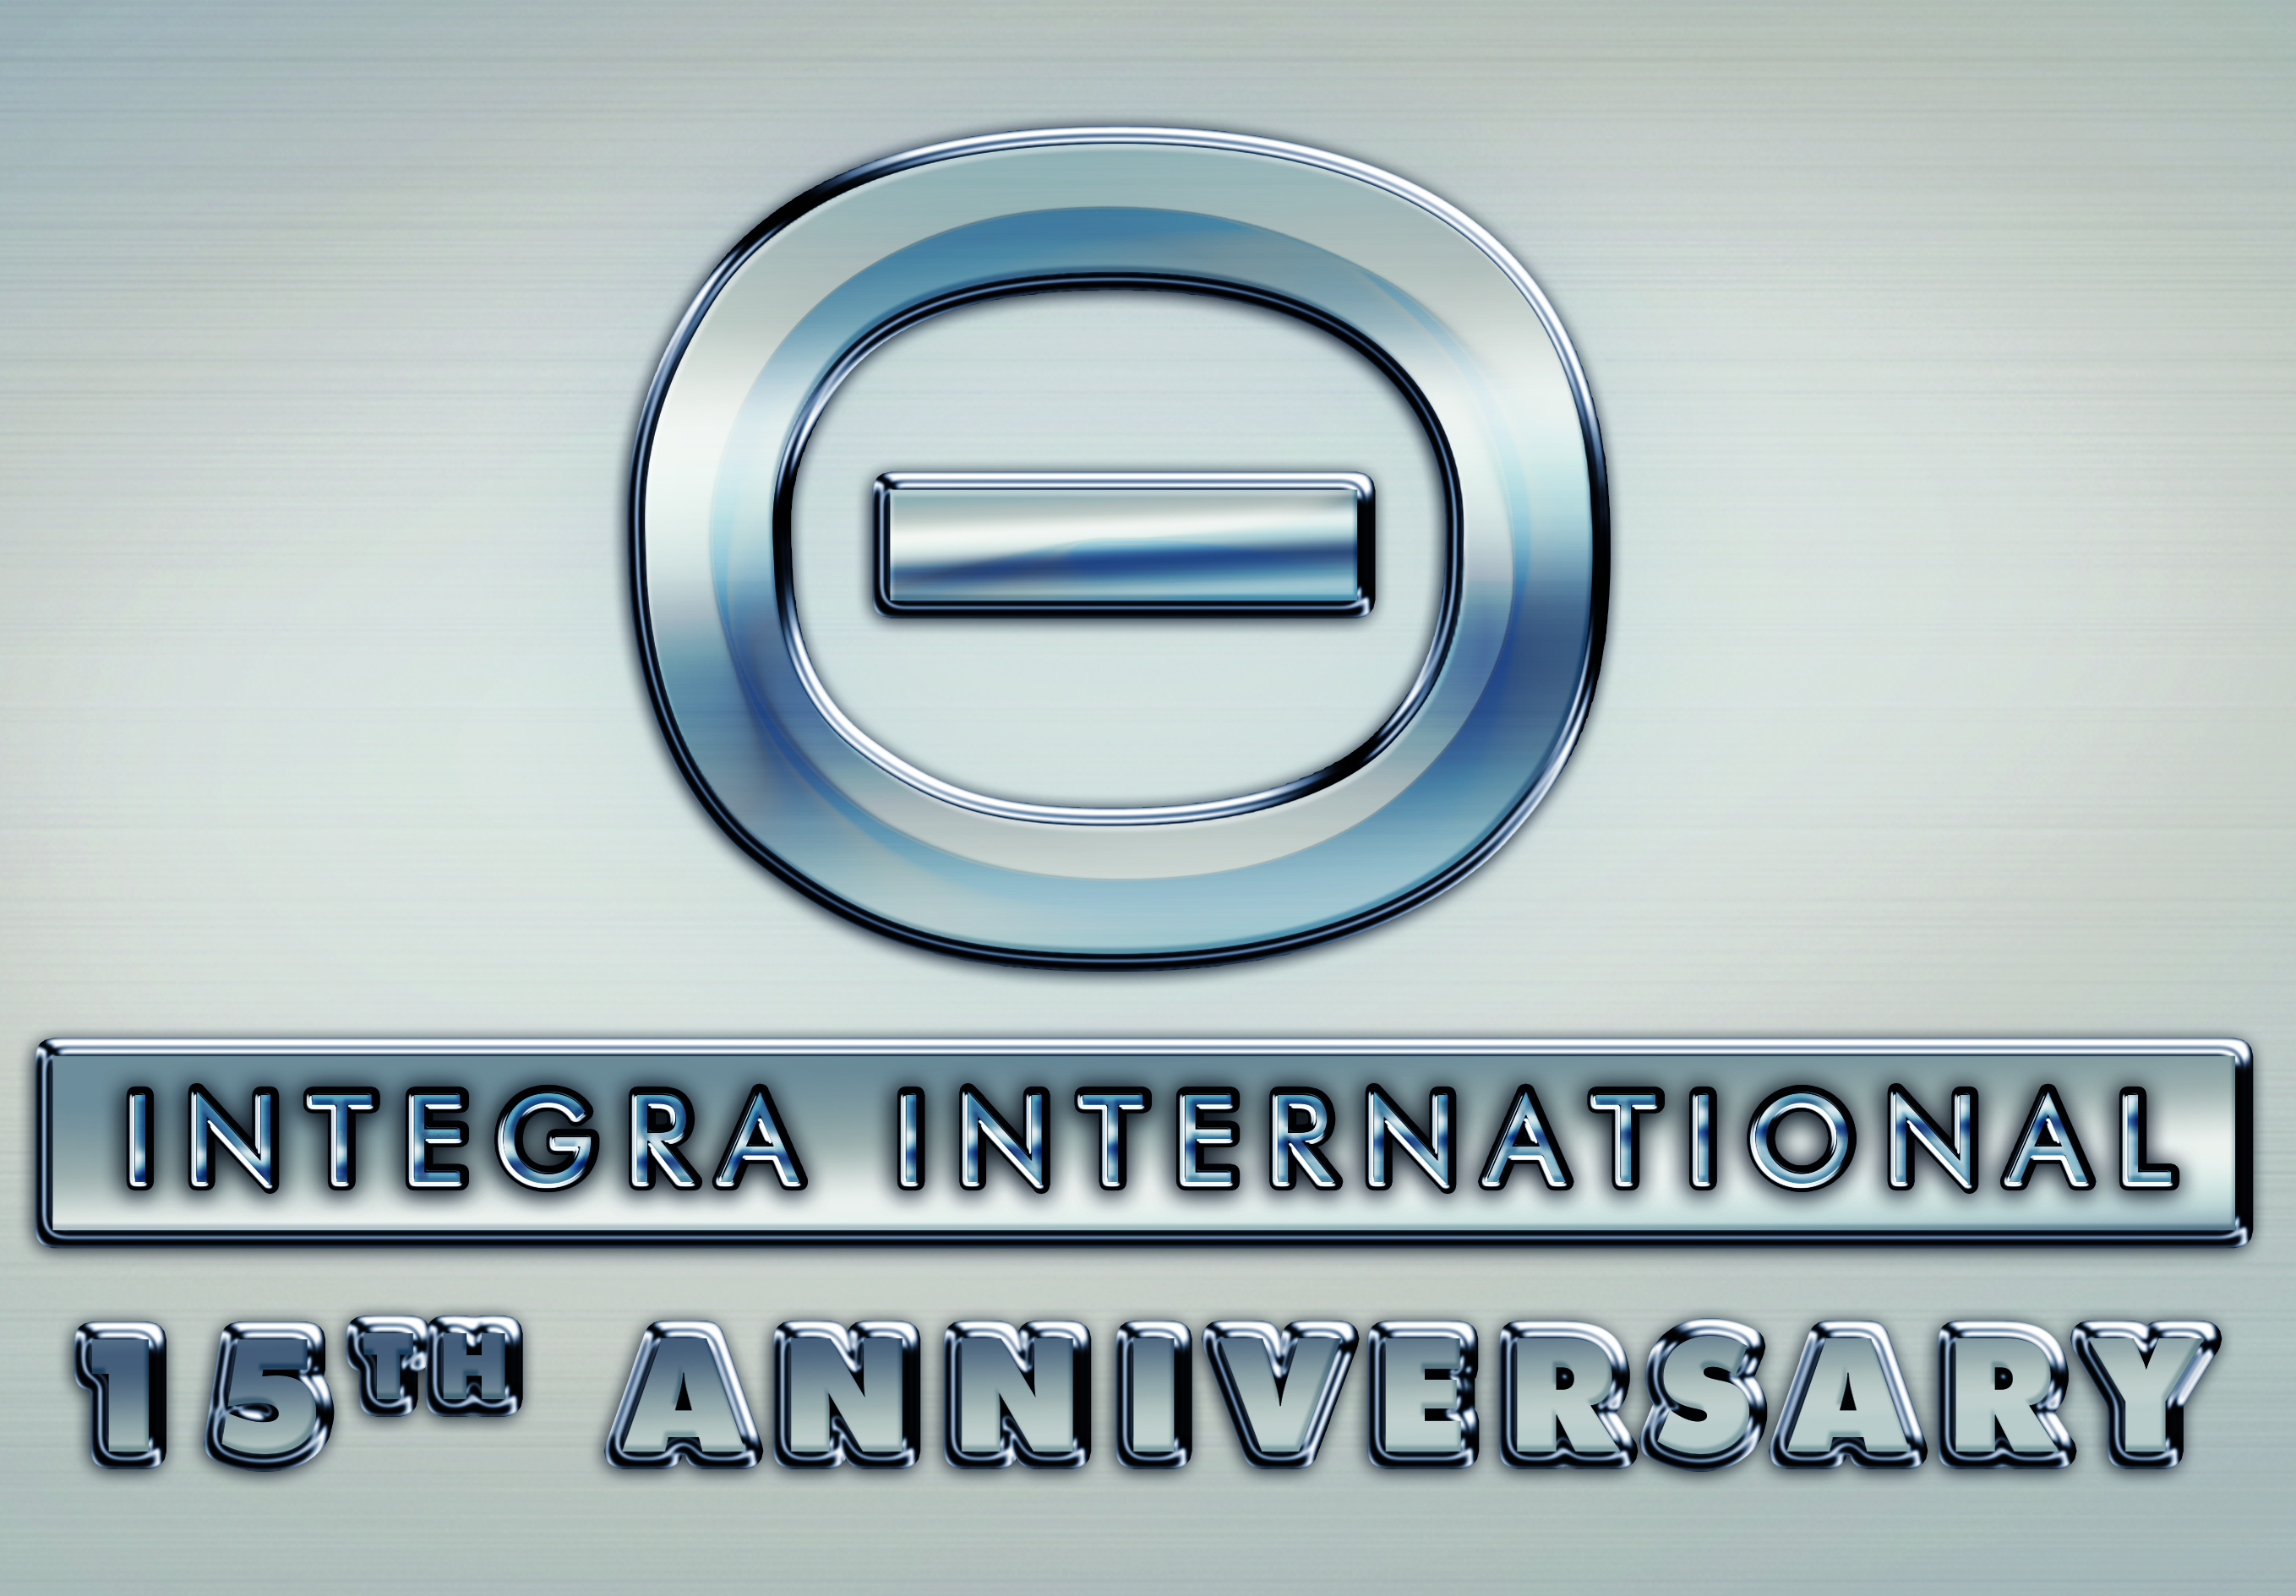 Integra International celebrates 15 years